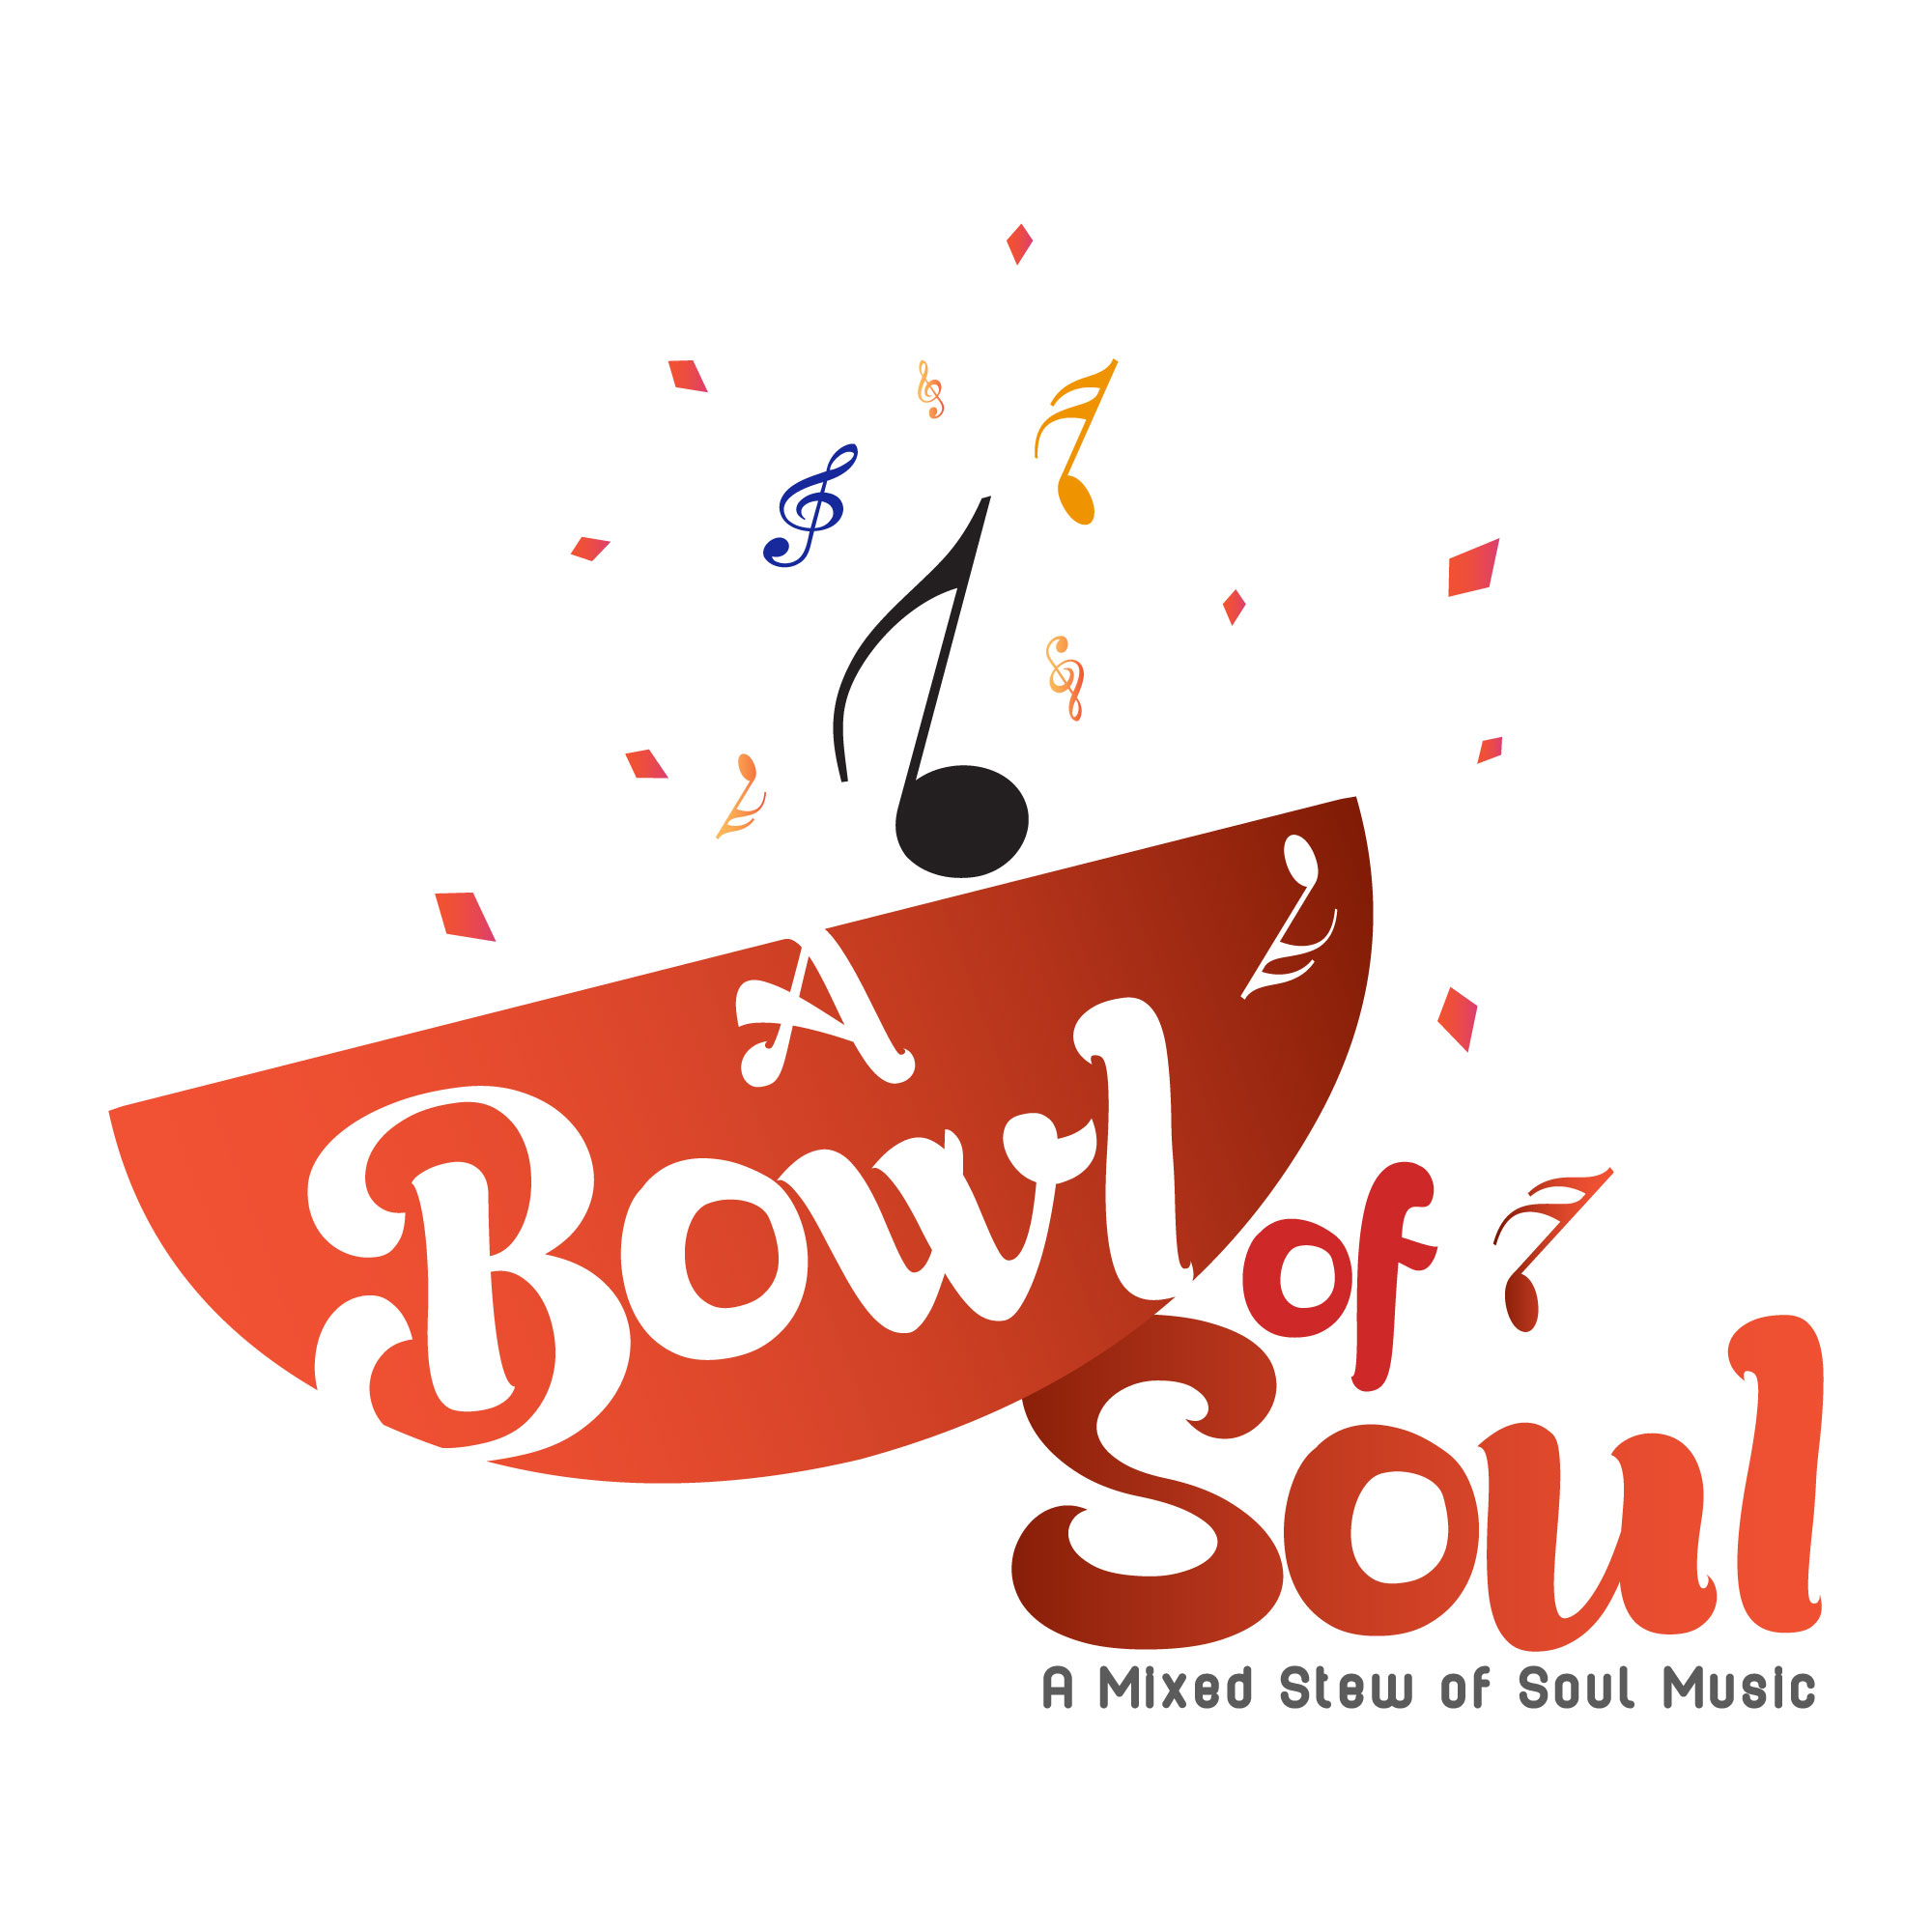 A Bowl of Soul A Mixed Stew of Soul Music Broadcast - 03-26-2021 - Continuation and Last Episode of The Ladies of R&B. March is Women's History Month show art